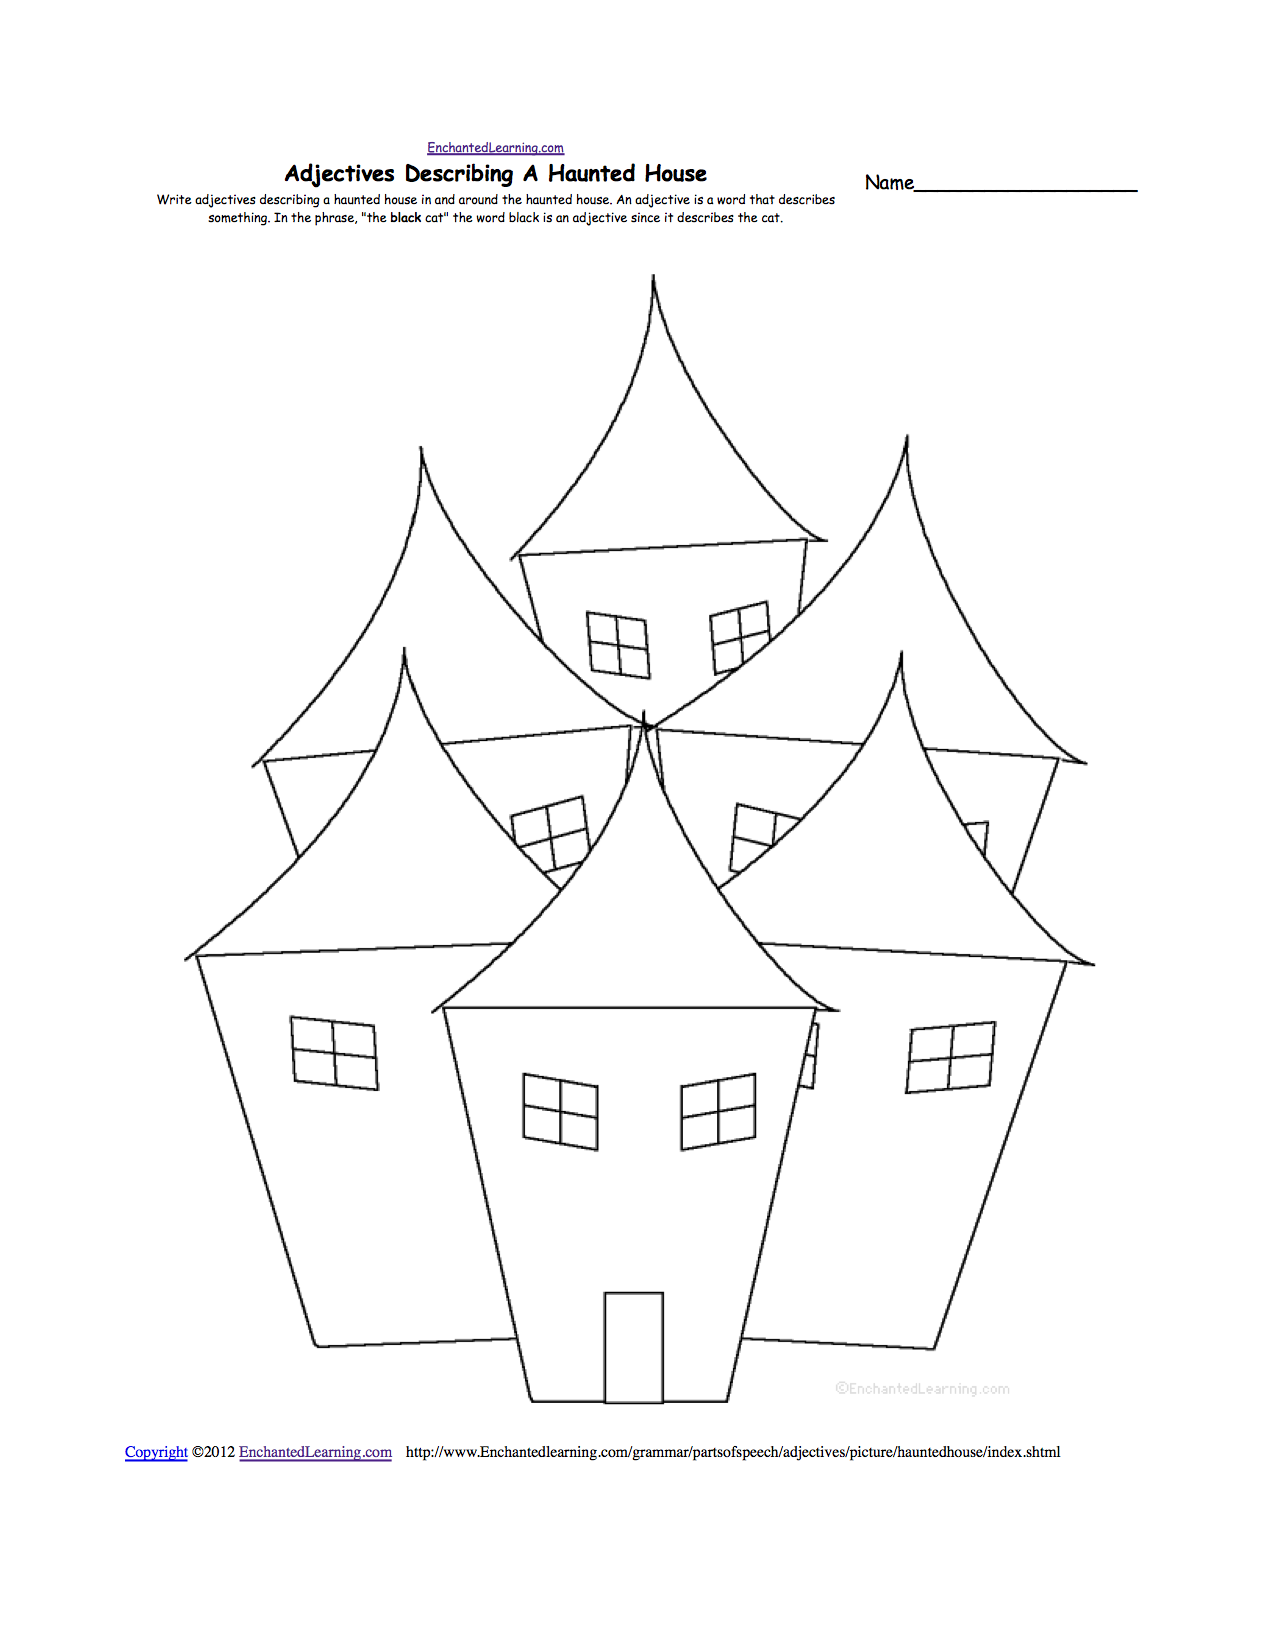 Drawn house horror house At house com Other EnchantedLearning